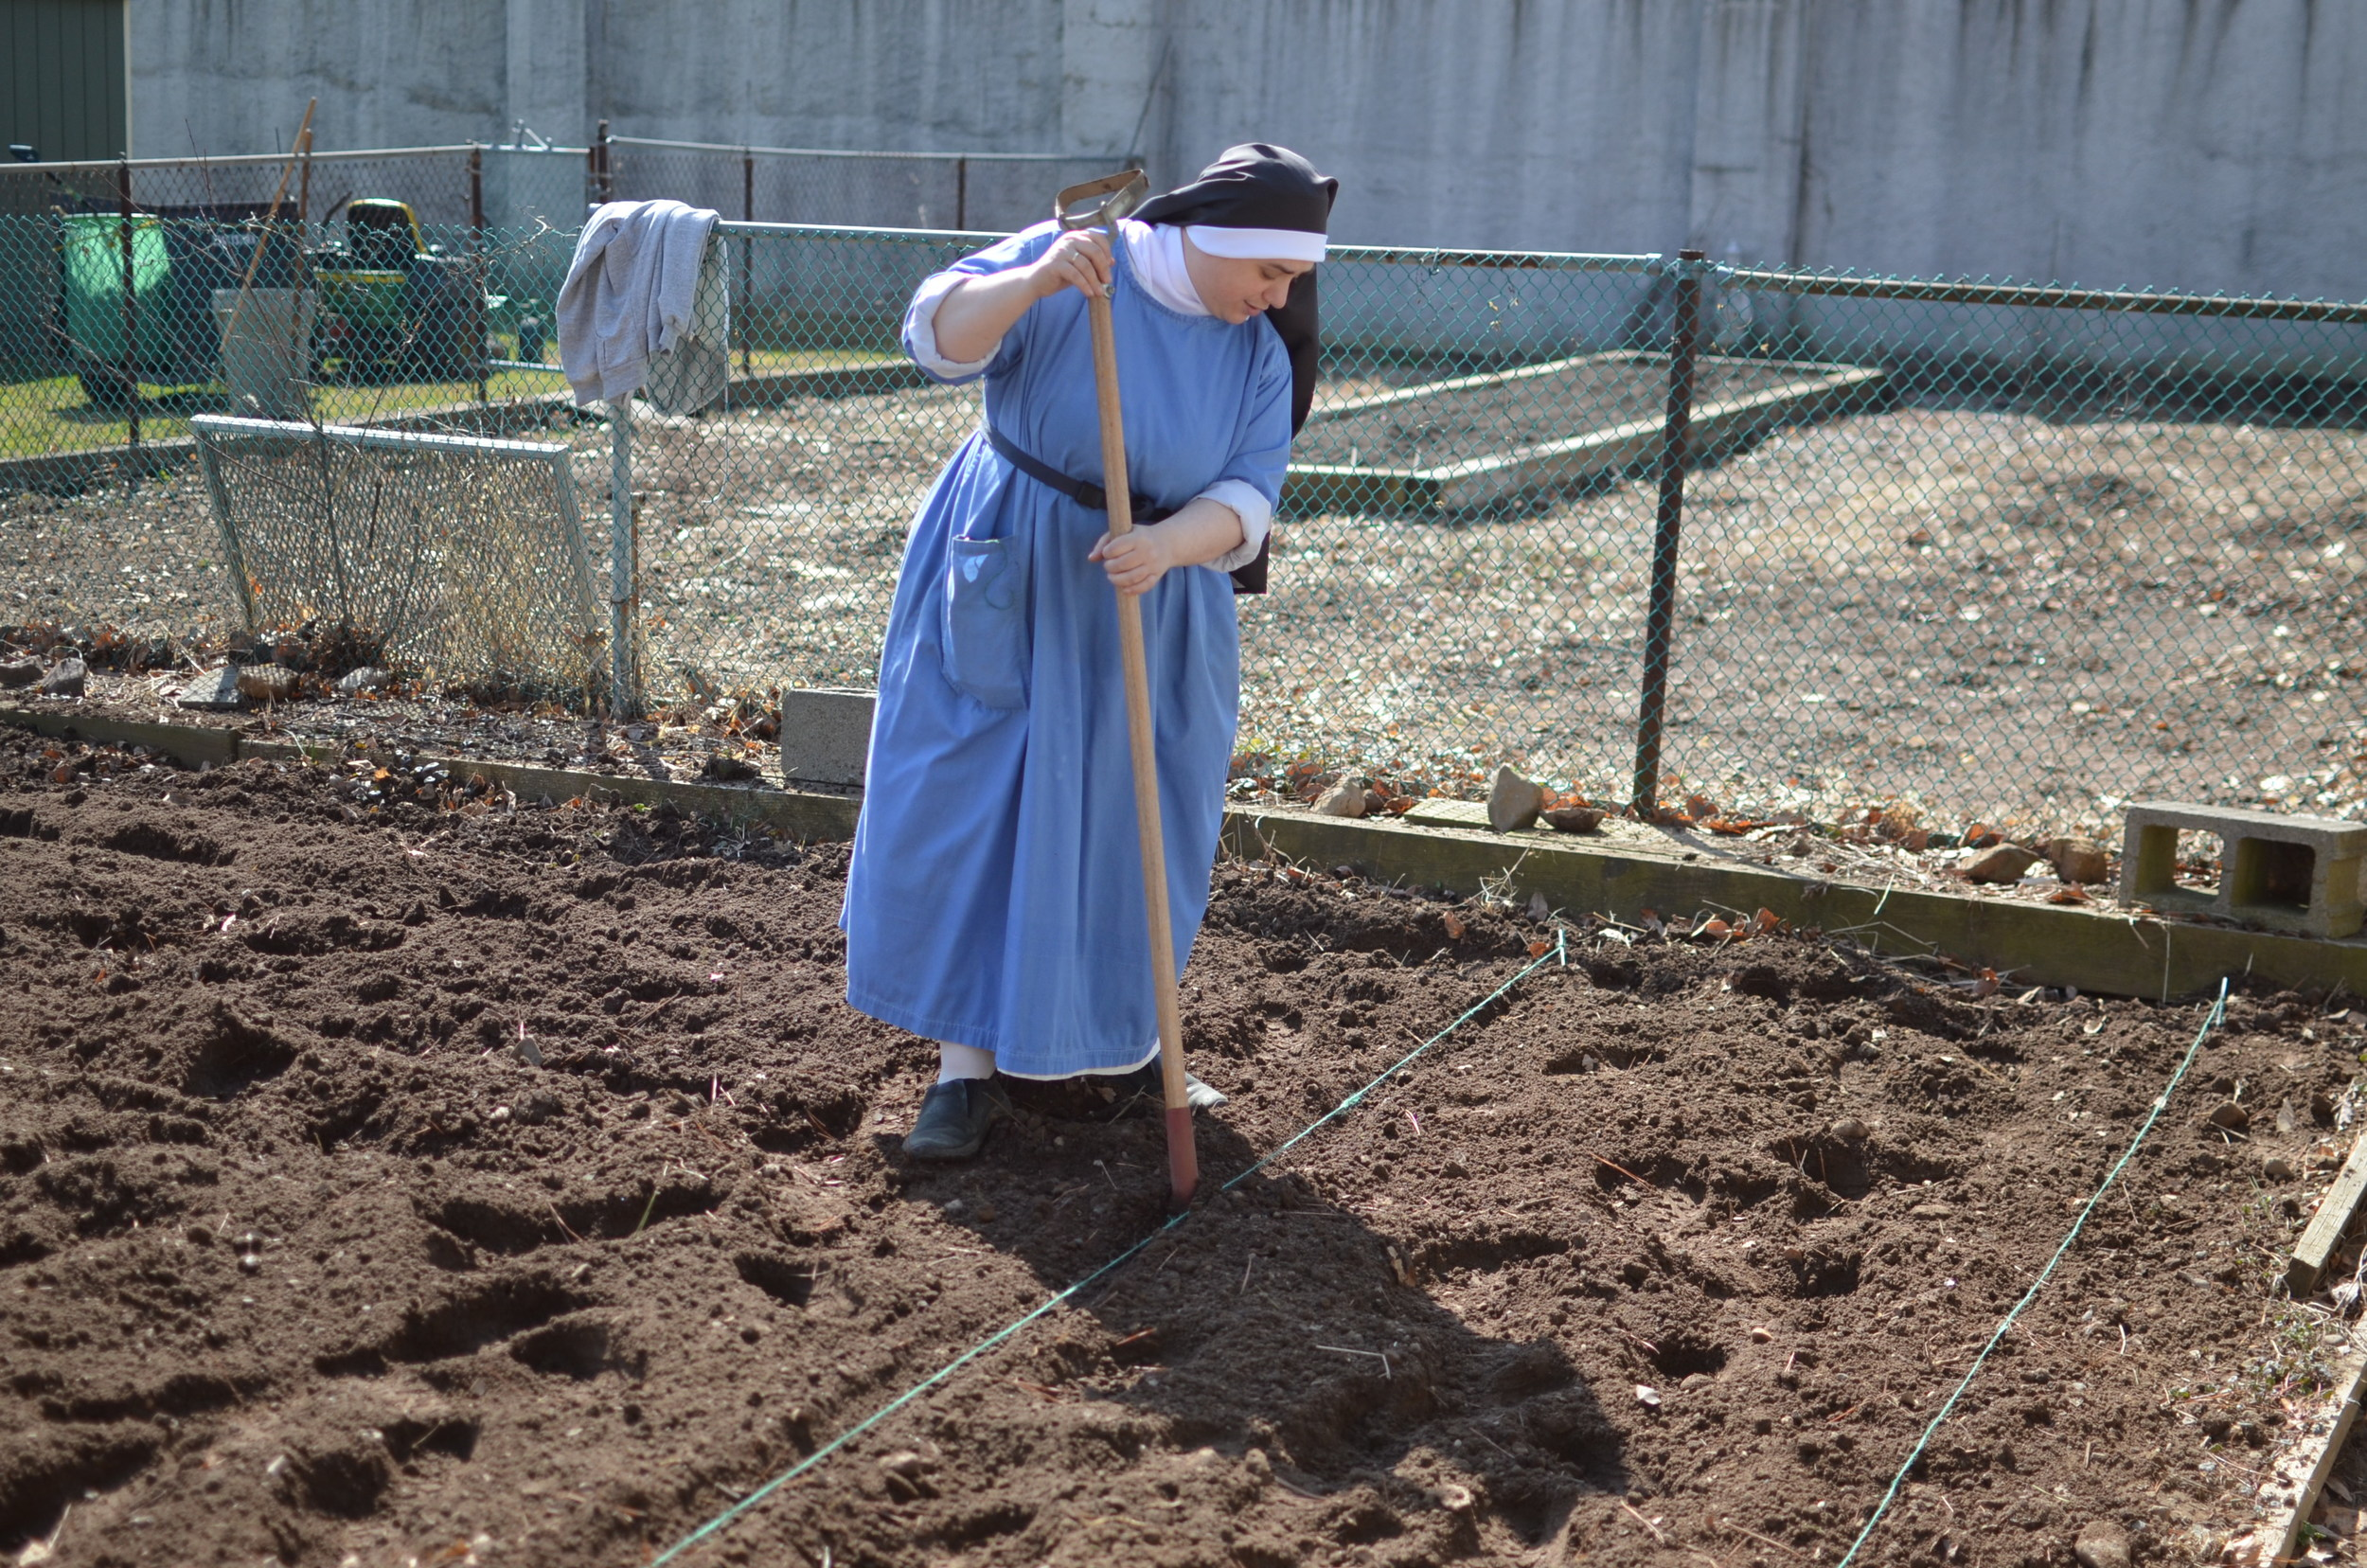 Usually Sr. Mary Catharine is BEHIND the camera but we caught her planting lettuce!